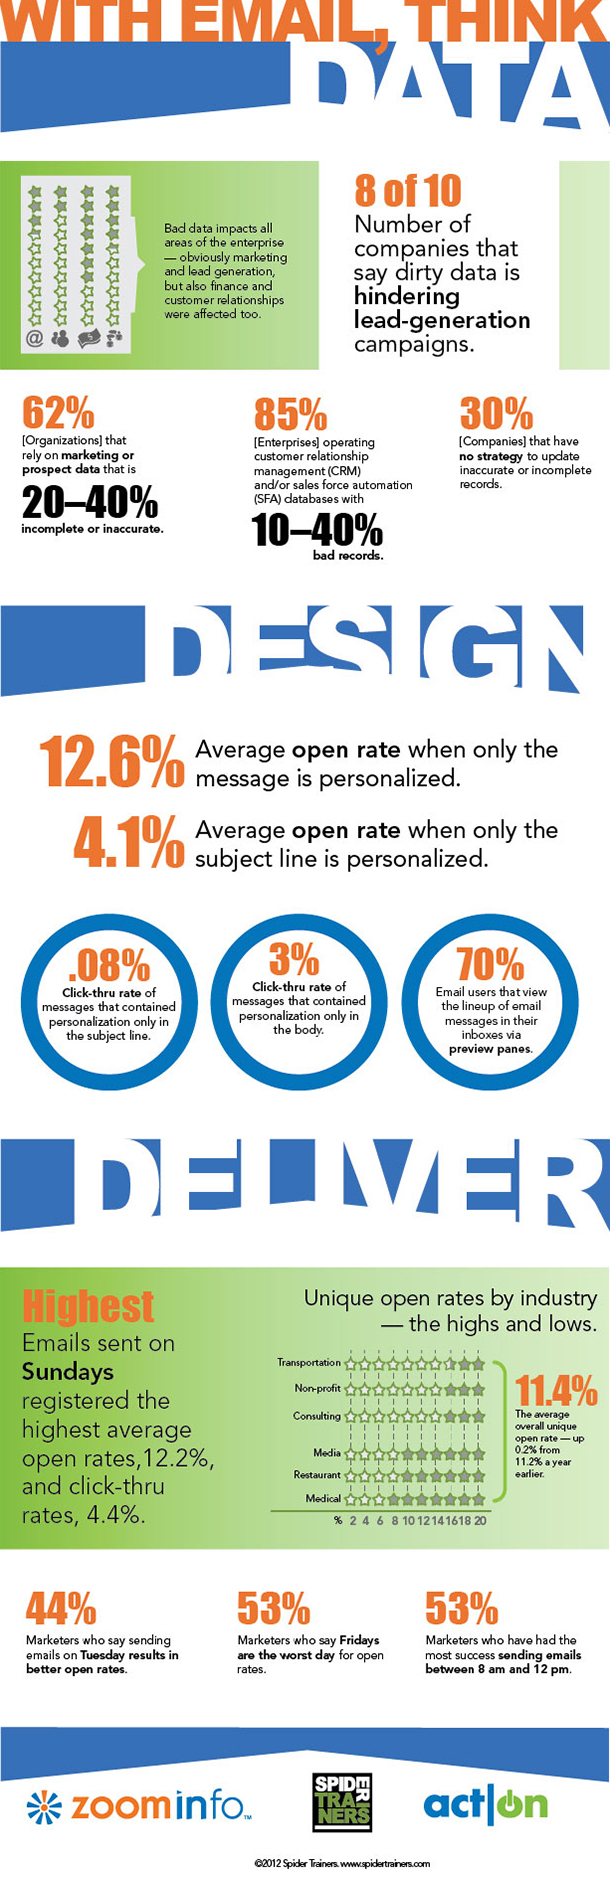 Data. Design. Deliver. infographic image